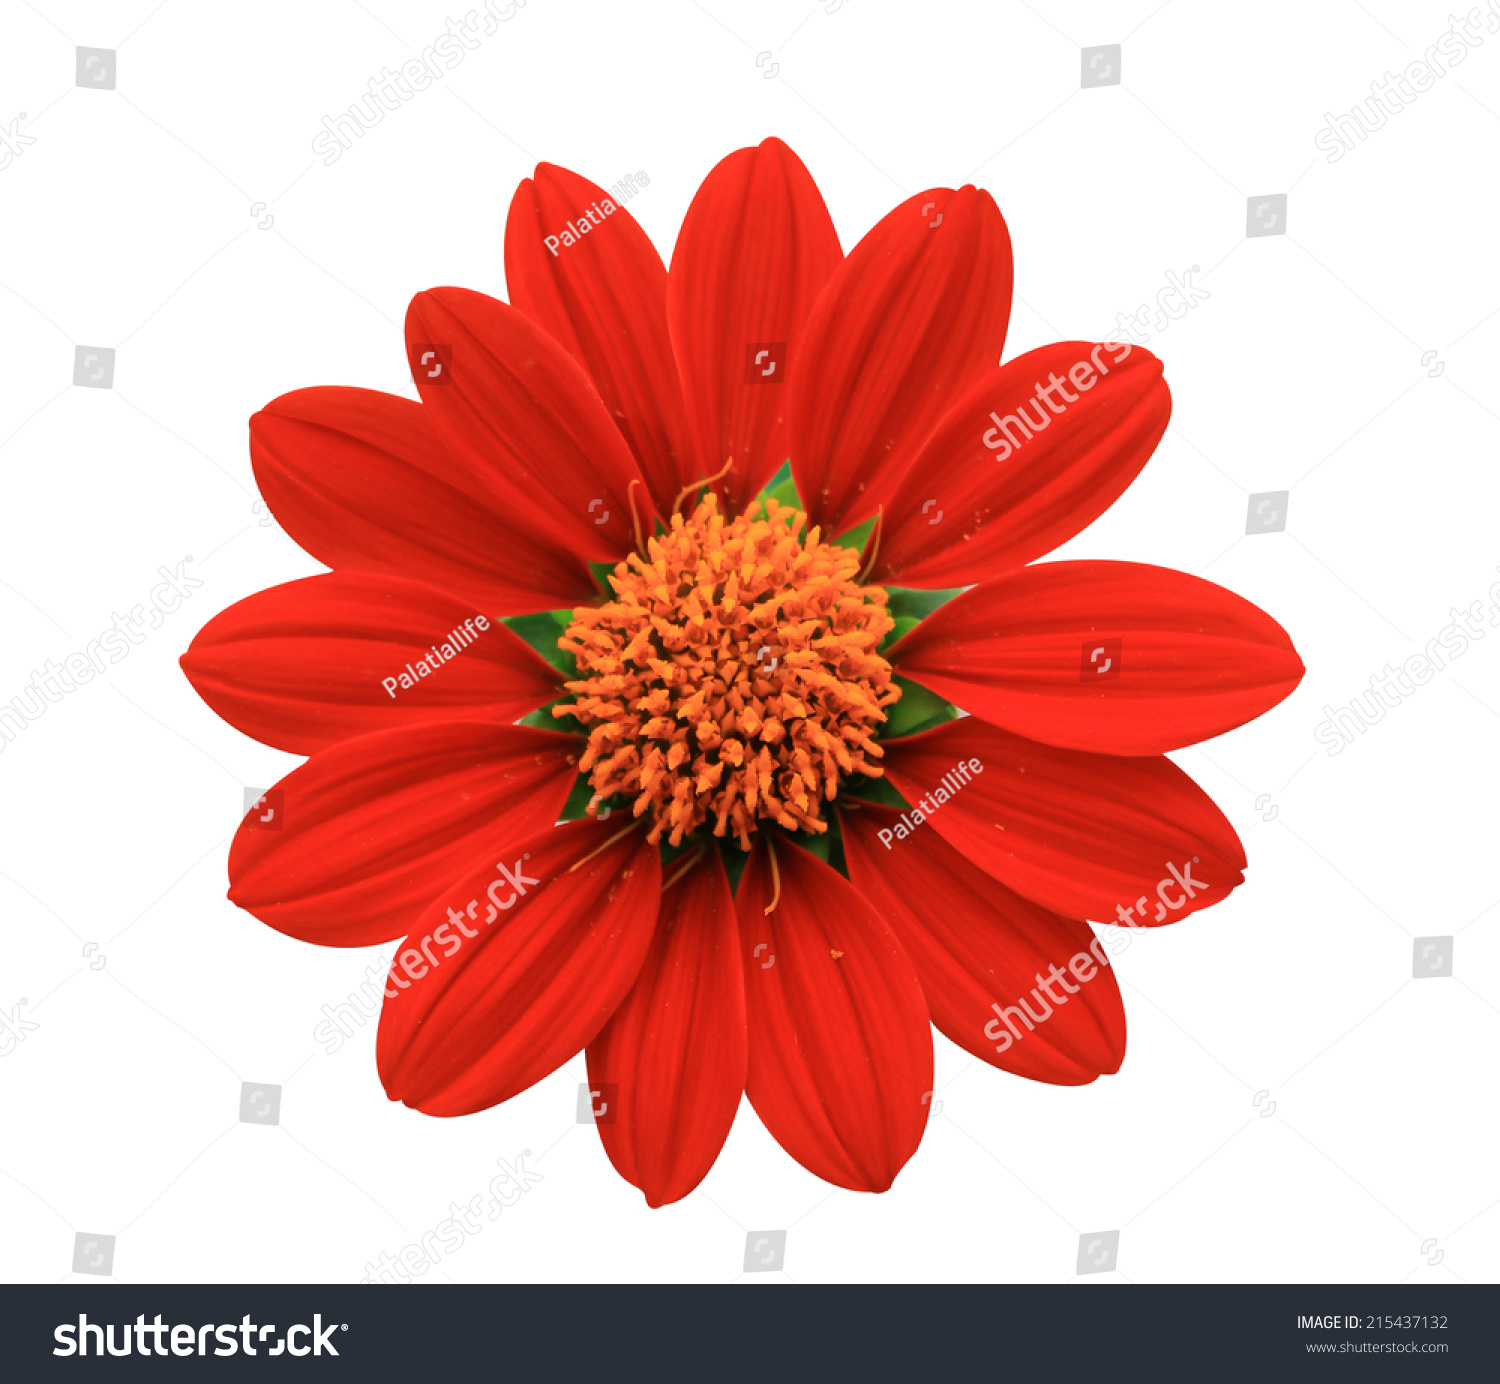 Flower Sometimes Known Bloom Blossom Reproductive Stock Shu